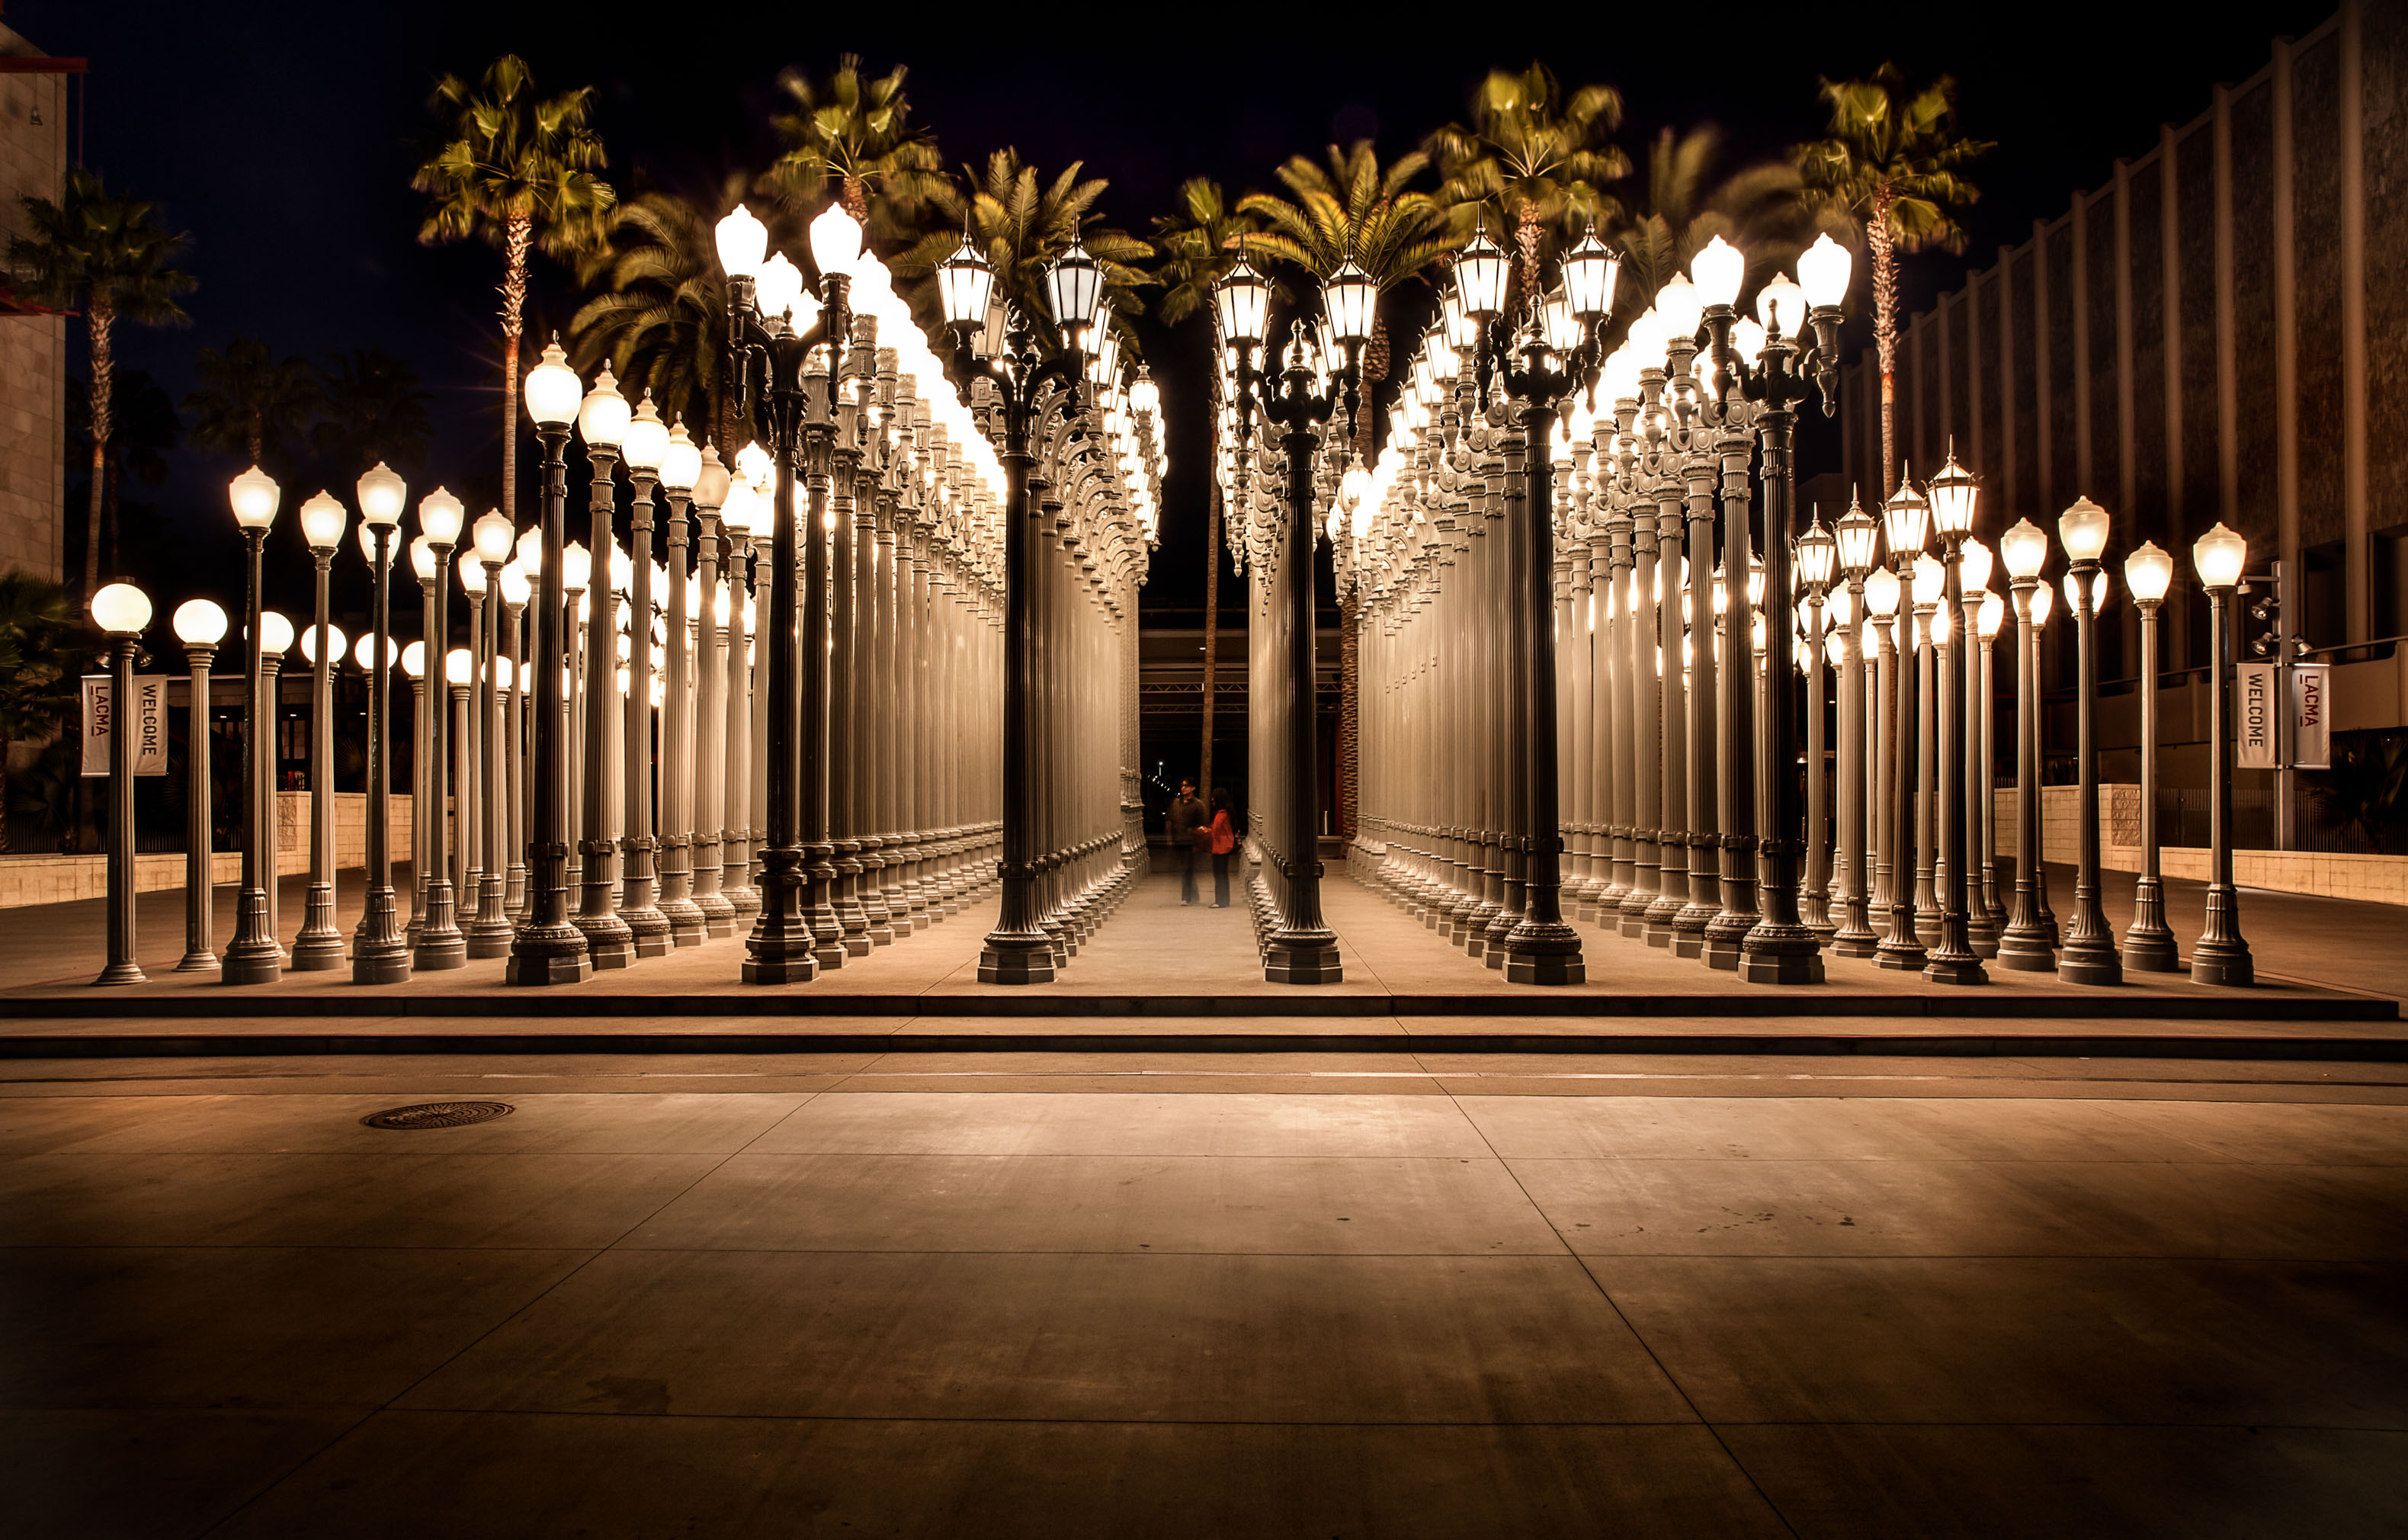 E0EY75 Urban Light by Chris Burden, Los Angeles County Museum of Art on Wilshire Boulevard.. Image shot 2013. Exact date unknown.